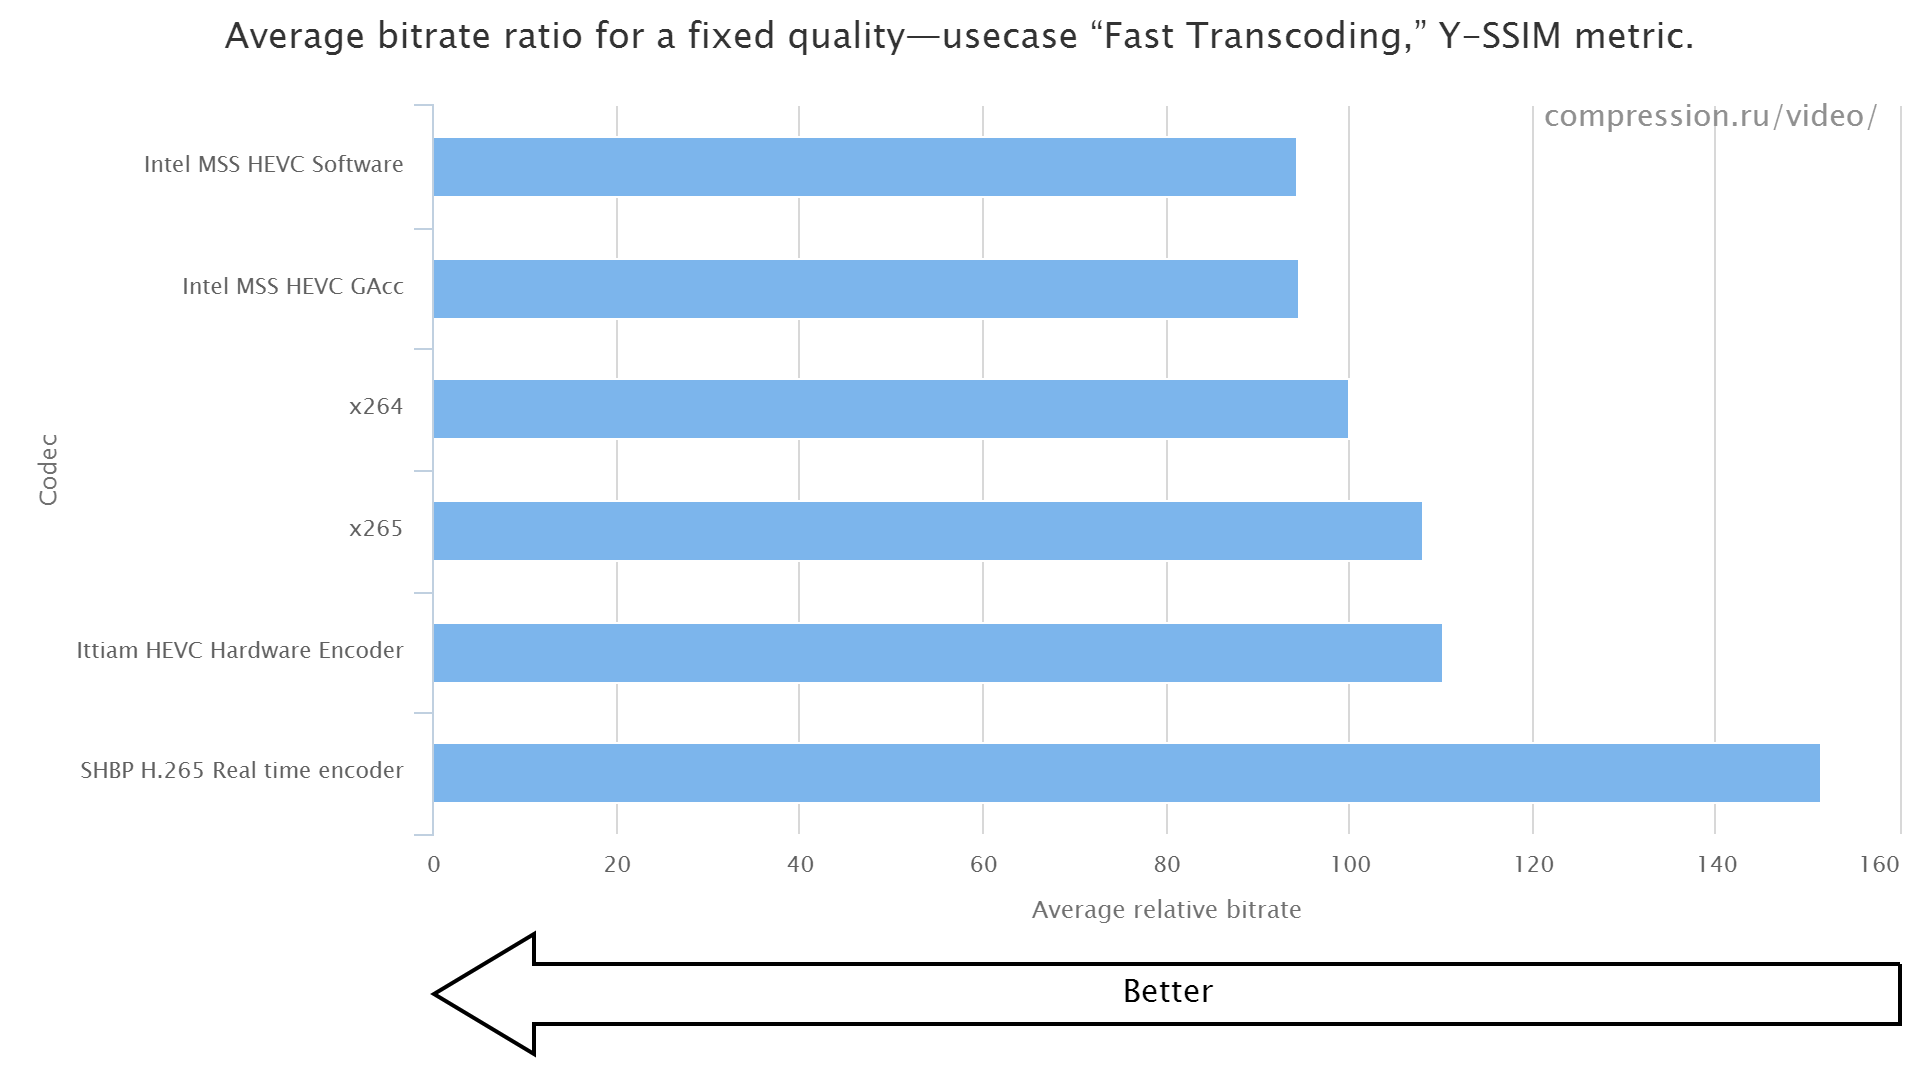 Average bitrate for Fast transcoding use-case (Y-SSIM metric)